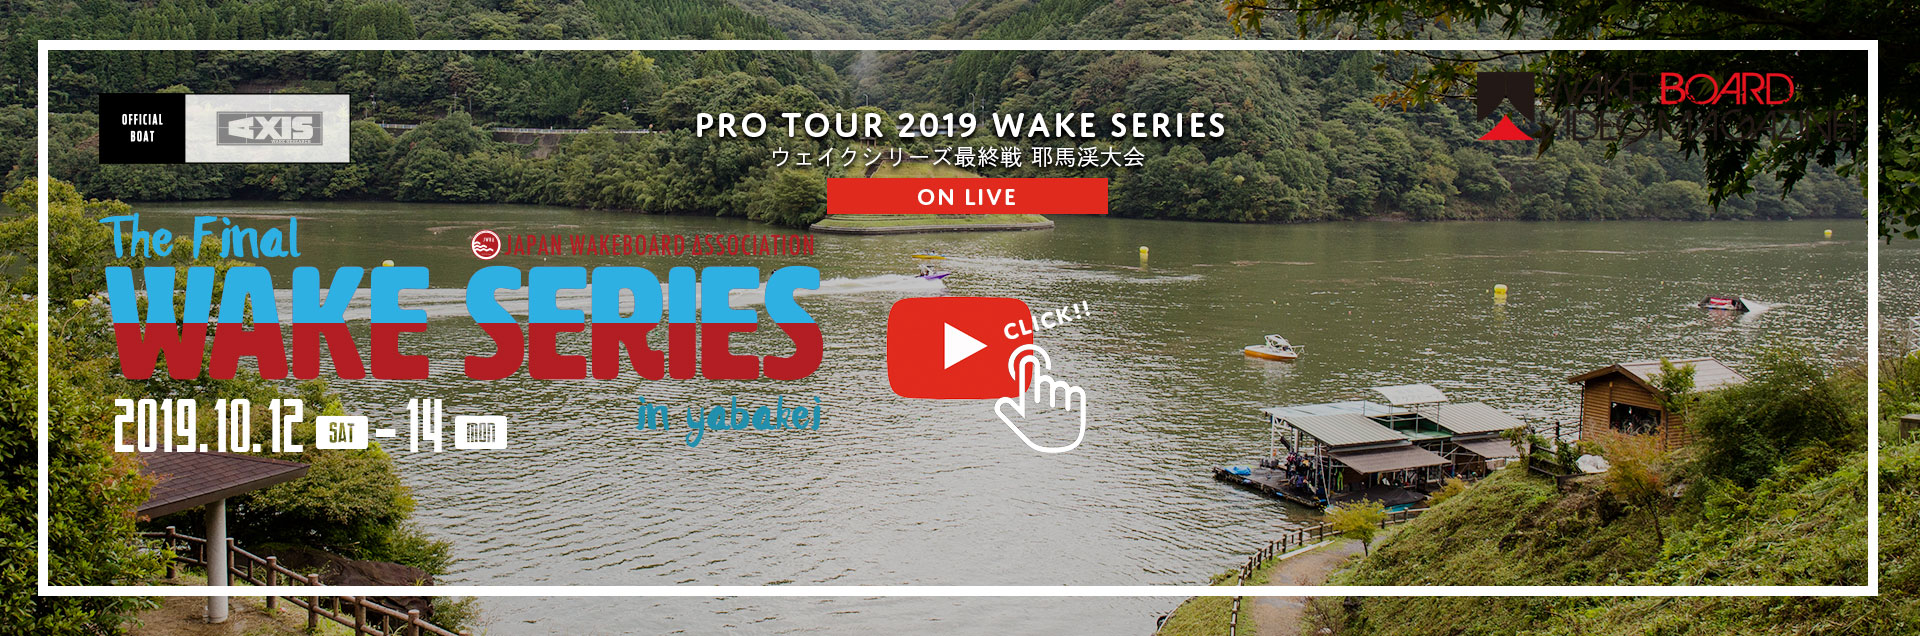 2019_jwba_main_wakeseries_04_001